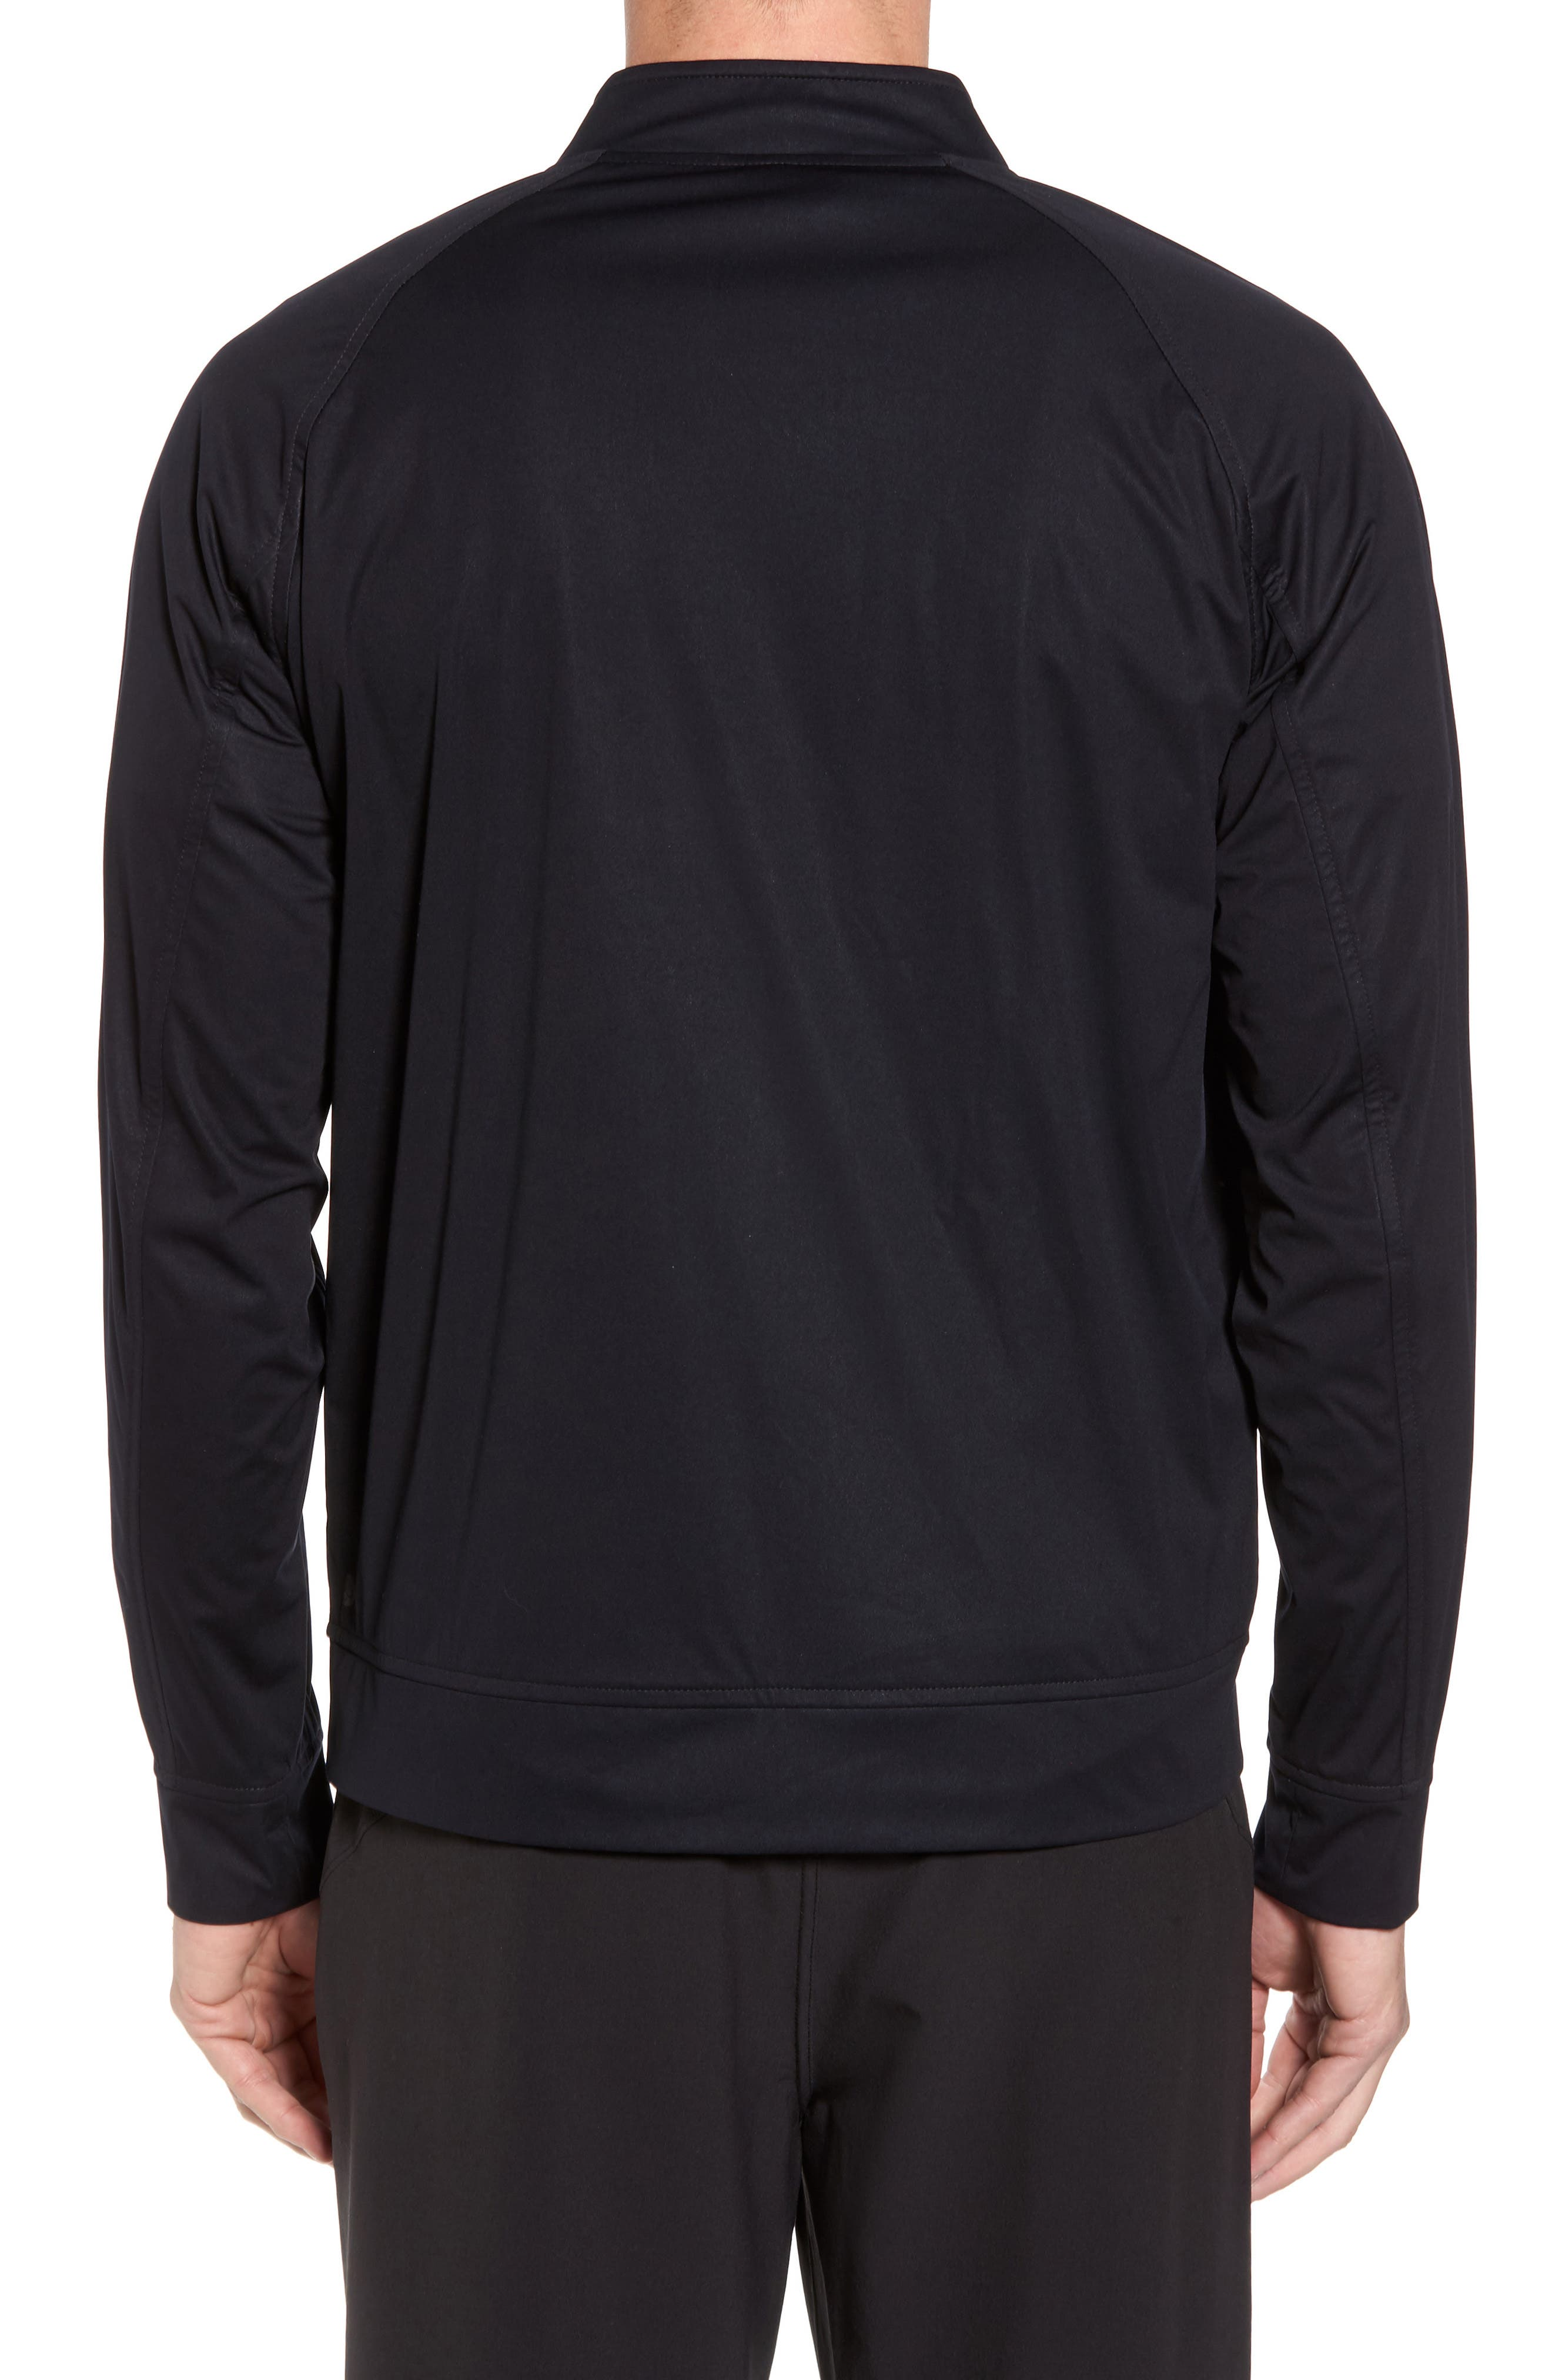 Softshell Bomber Jacket,                             Alternate thumbnail 2, color,                             Black